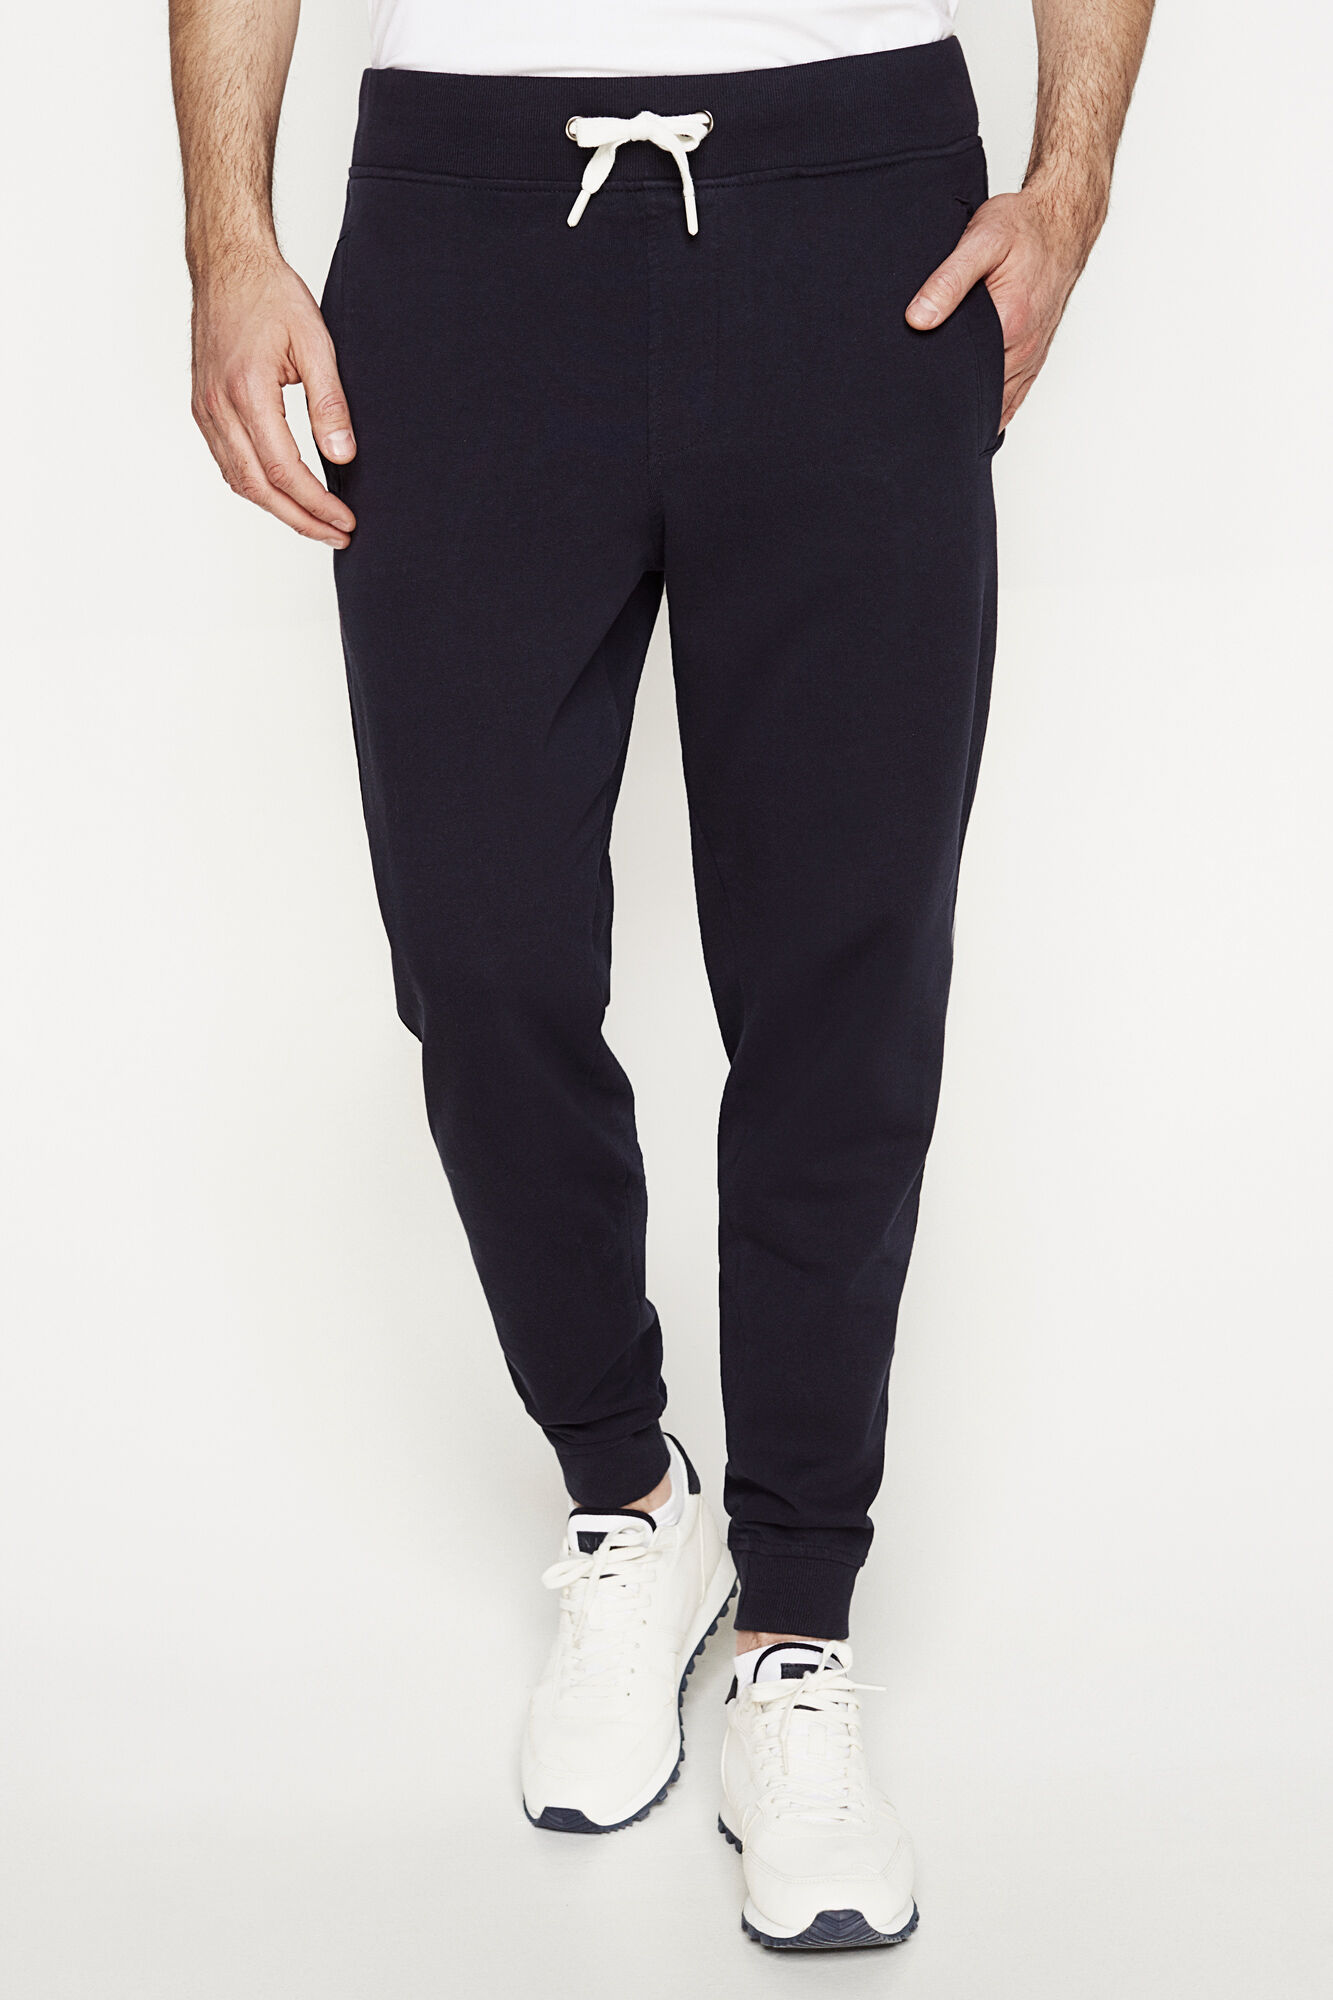 Mens Joggers Pique Trousers Springfield Low Cost Online Cheap Largest Supplier Cheap Sale Low Price Fee Shipping Clearance Collections Best Online cZqWT